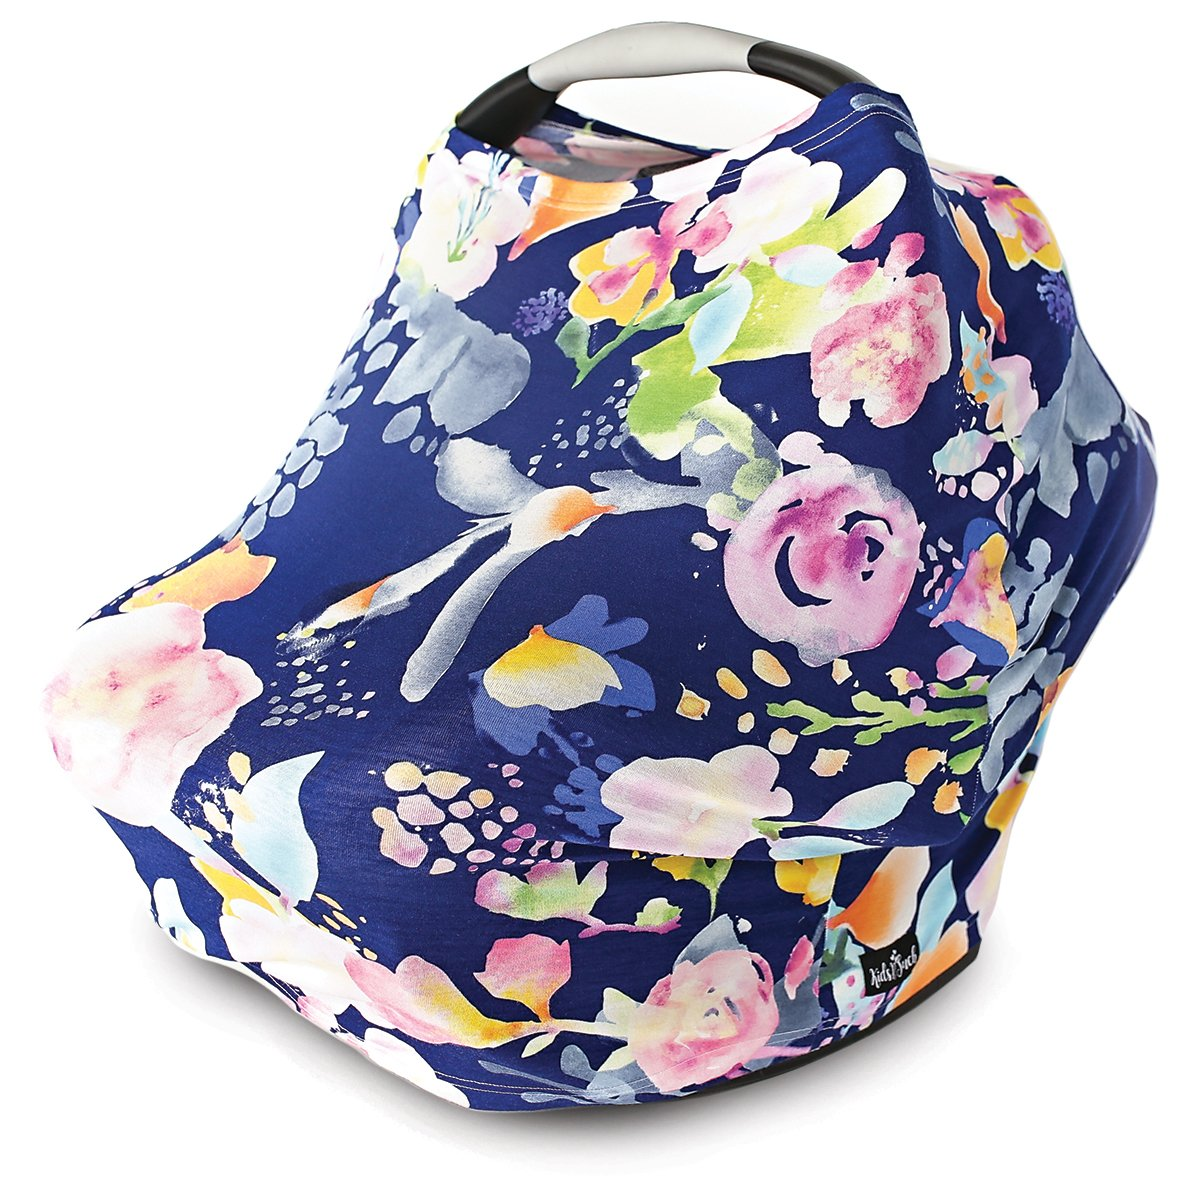 Kids N' Such Nursing Cover, Car Seat Canopy, Shopping Cart, High Chair and Carseat Covers for Girls Best... by Kids N%27 Such